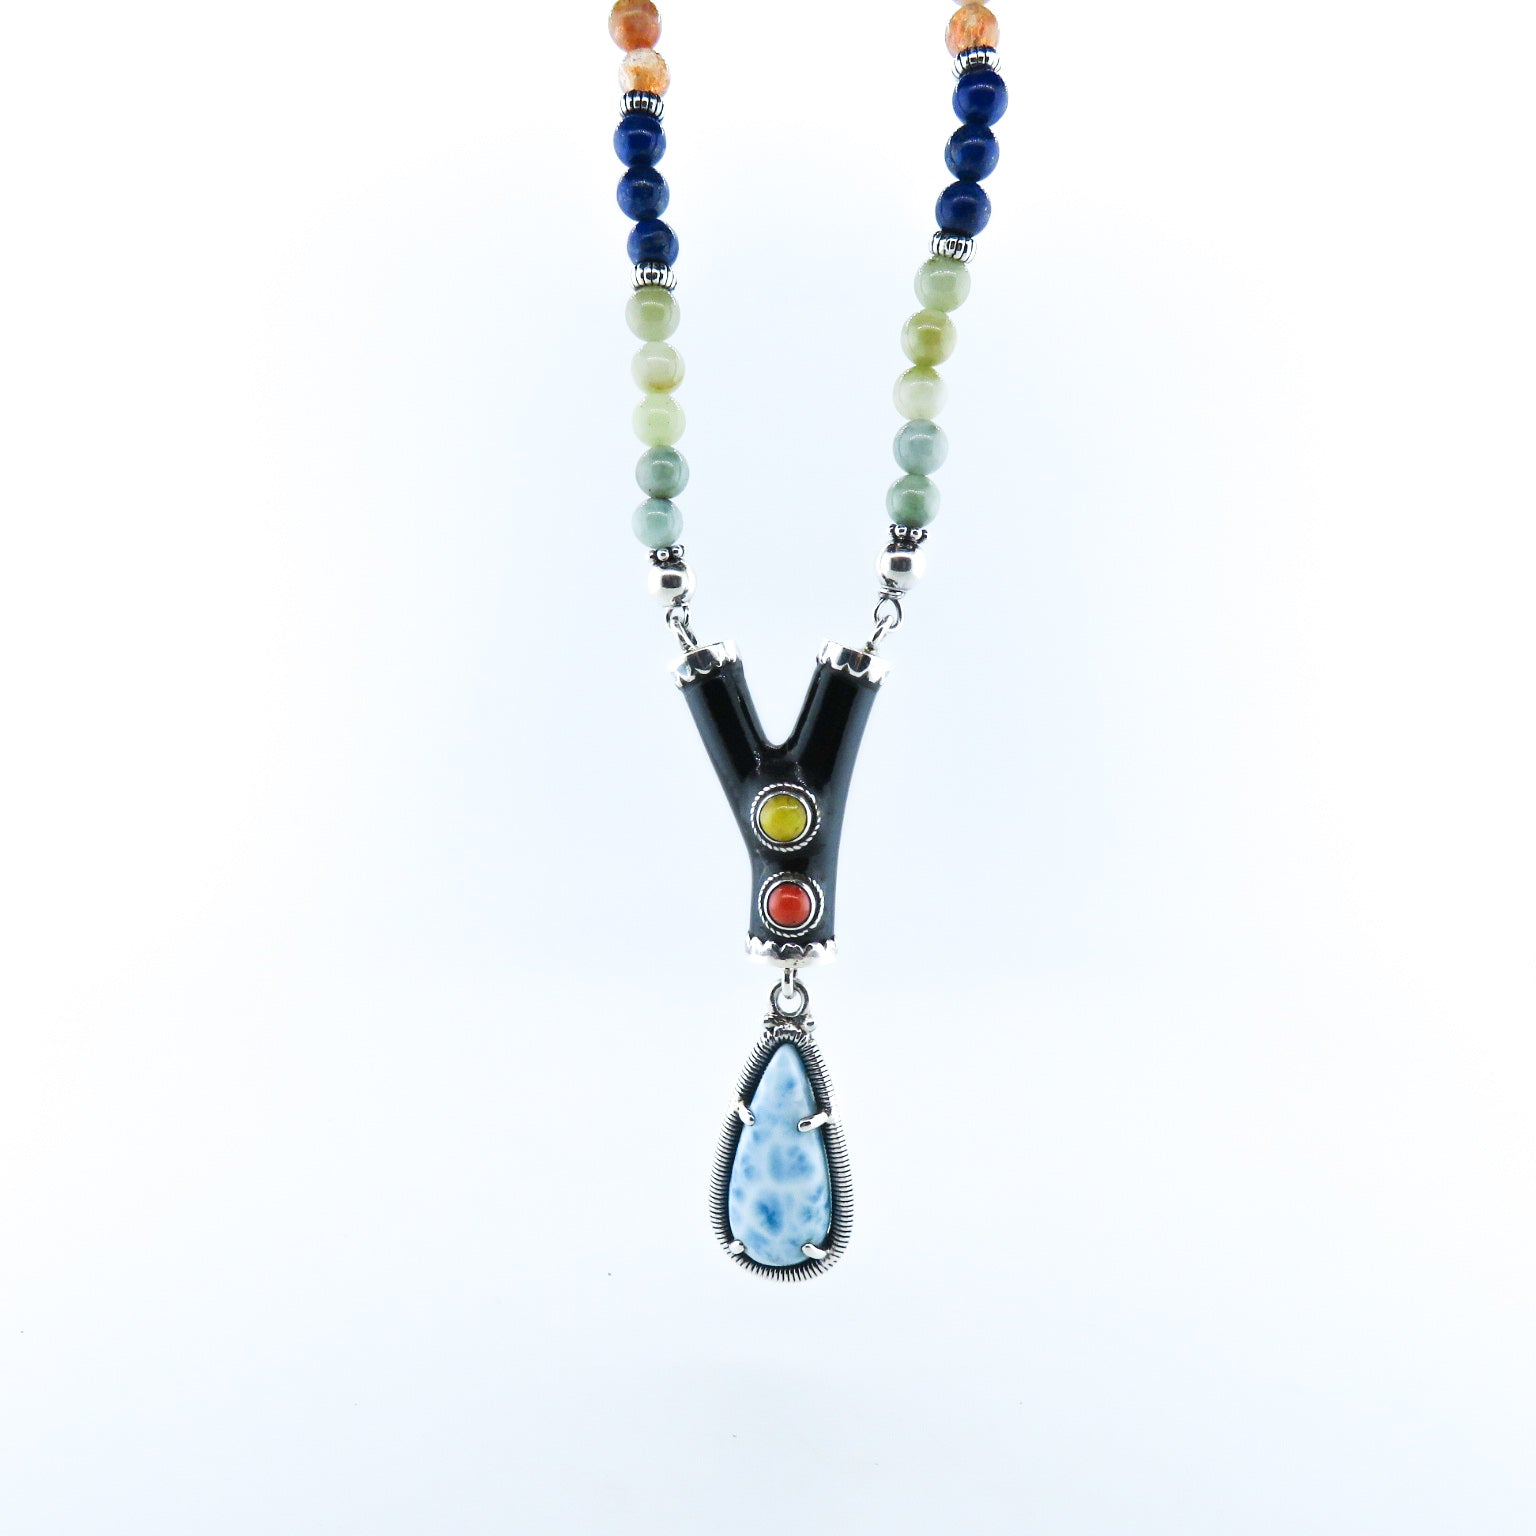 Larimar Stone Necklace with Black Coral, Jade, Lapis Lazuli, Red Coral, Sun Stone, Turquoise, Aquamarine and Silver Beads